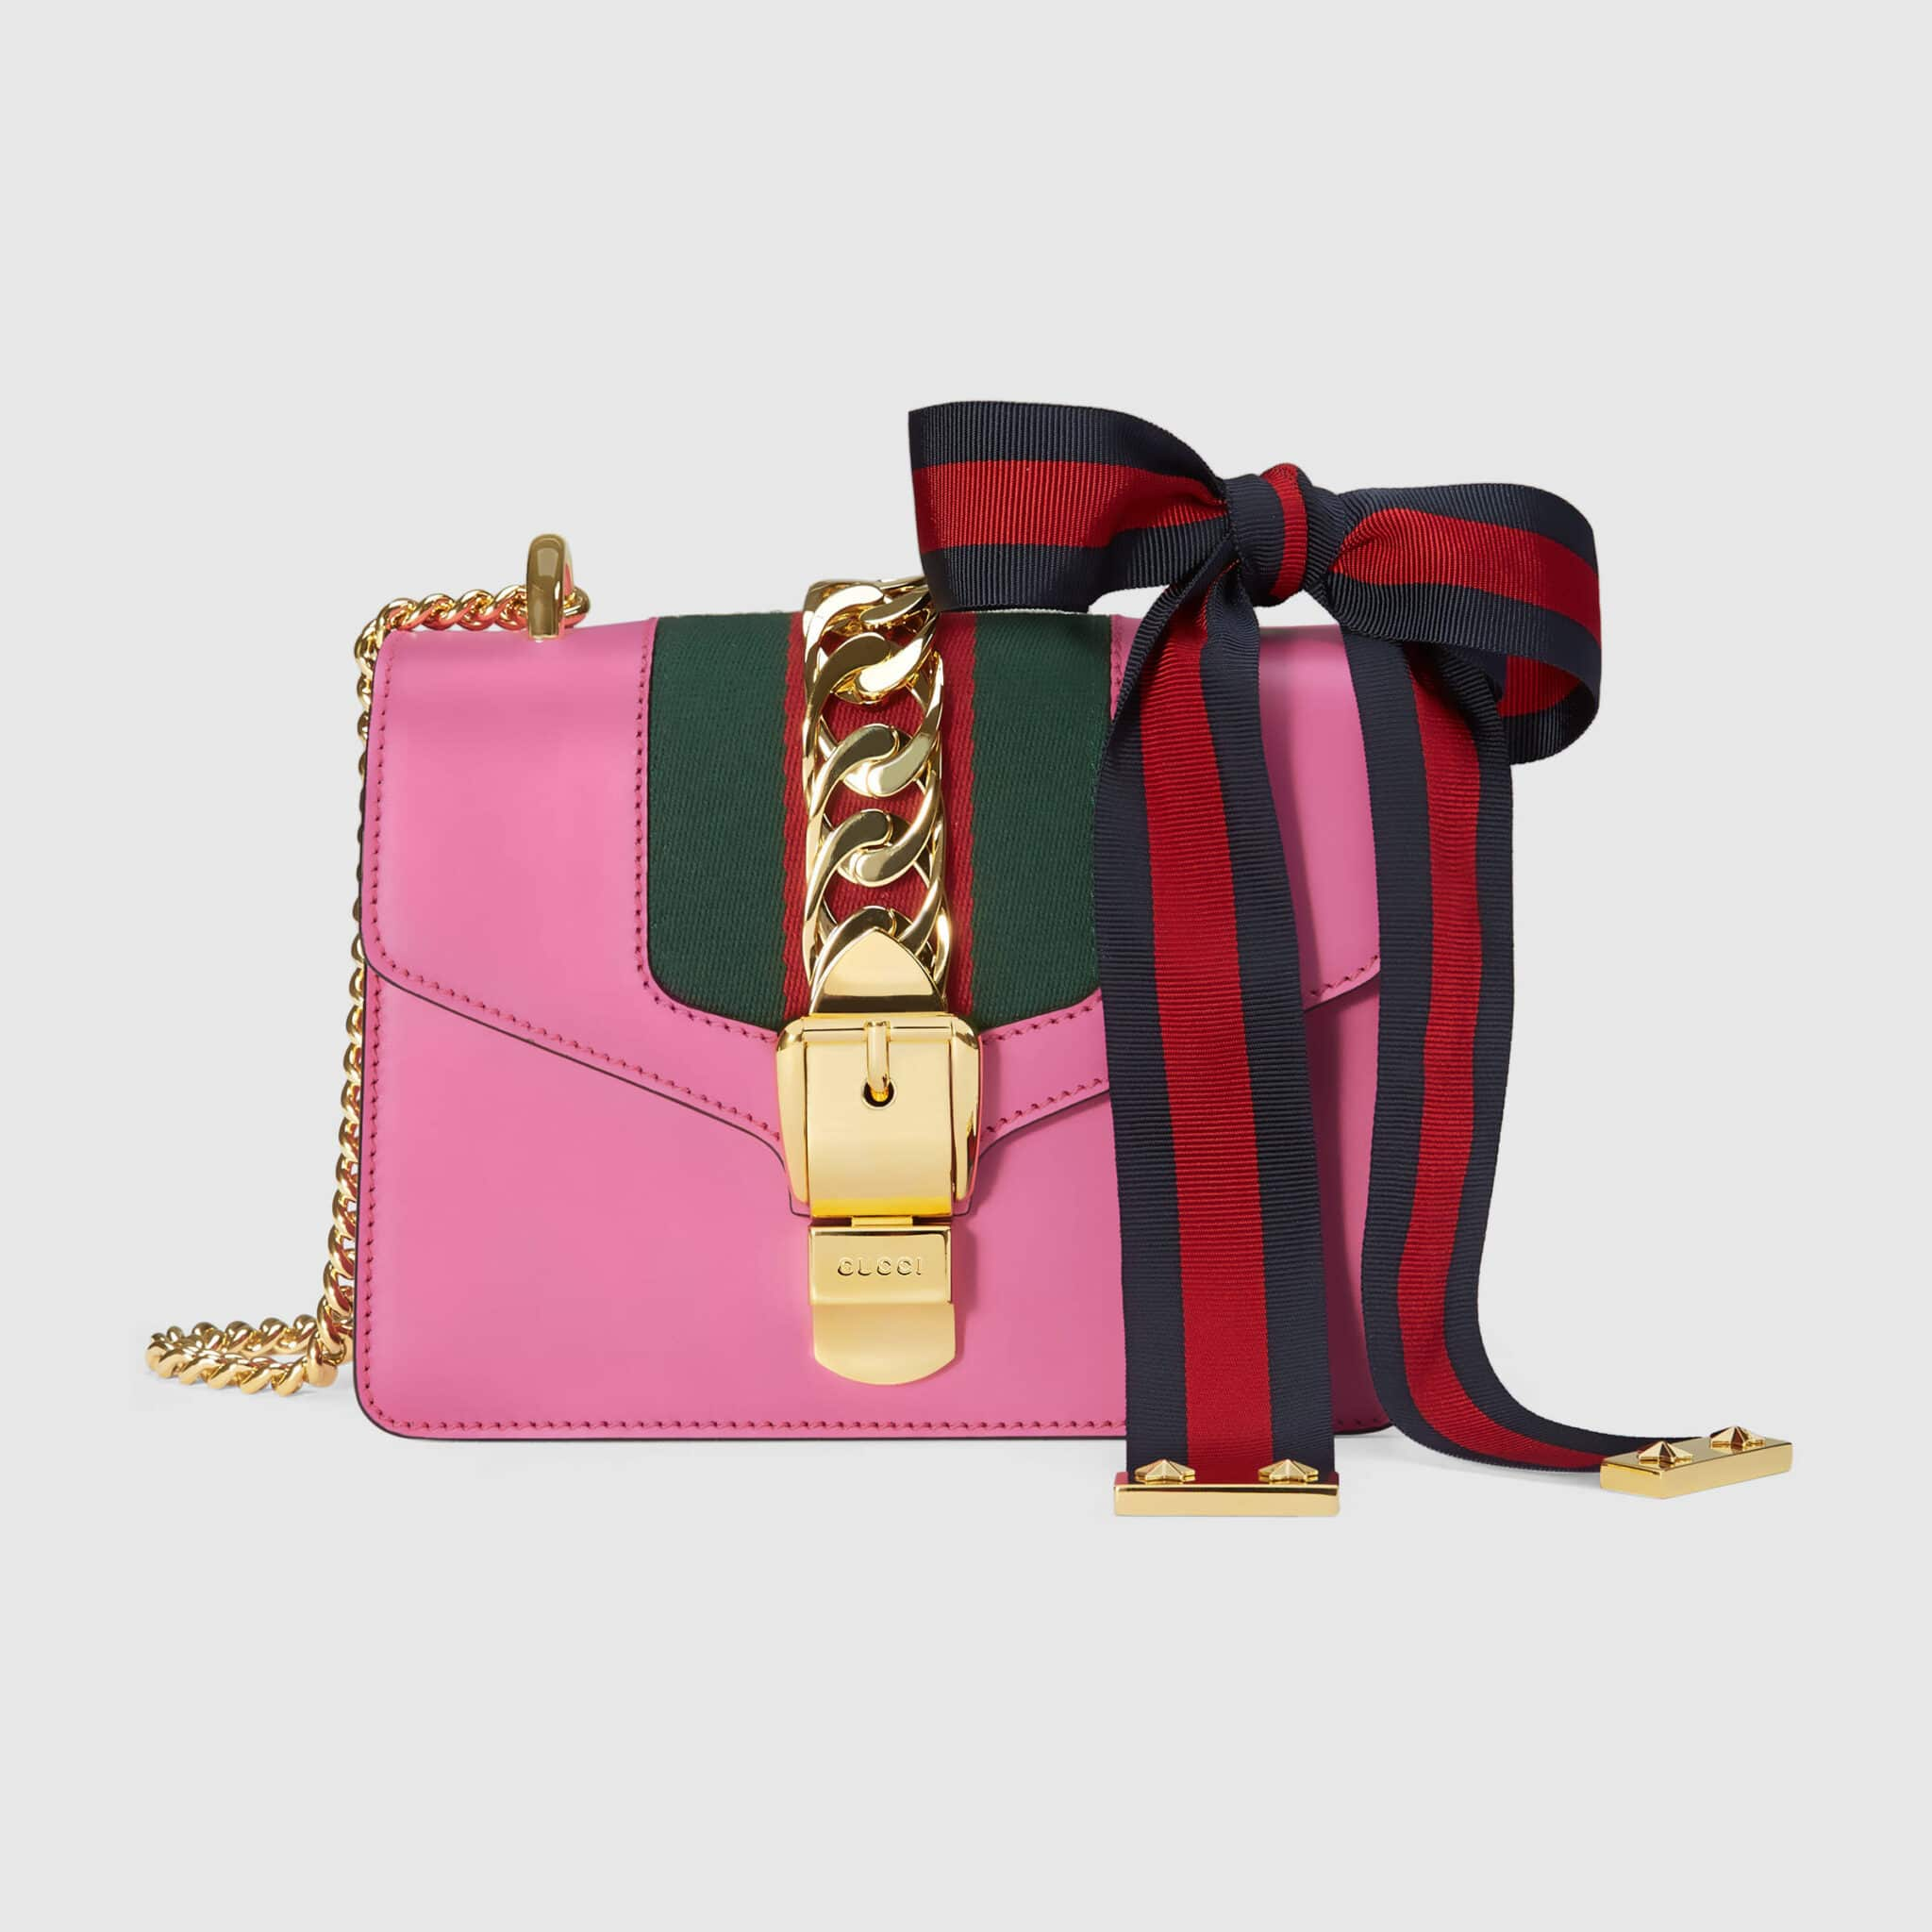 62cac035d641 Gucci Sylvie Tote Bag Reference Guide   Spotted Fashion